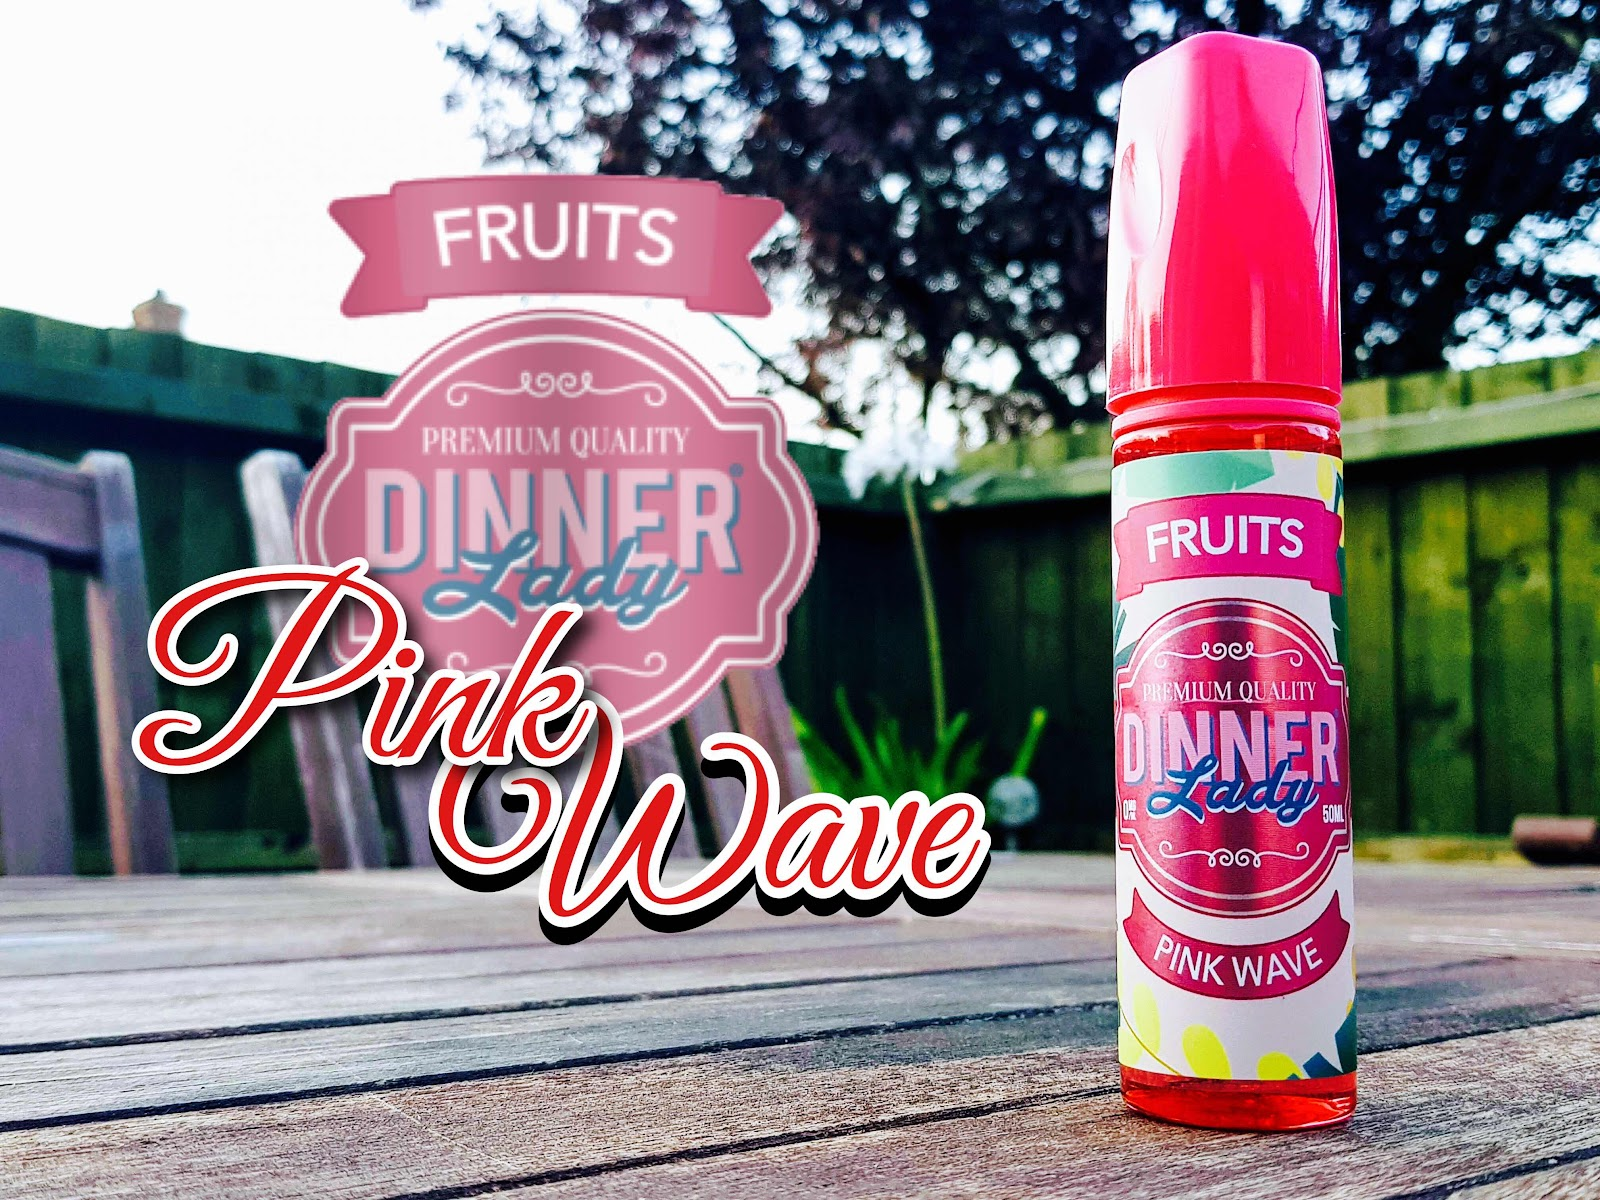 Dinner Lady Fruits Pink Wave Ejuice Review